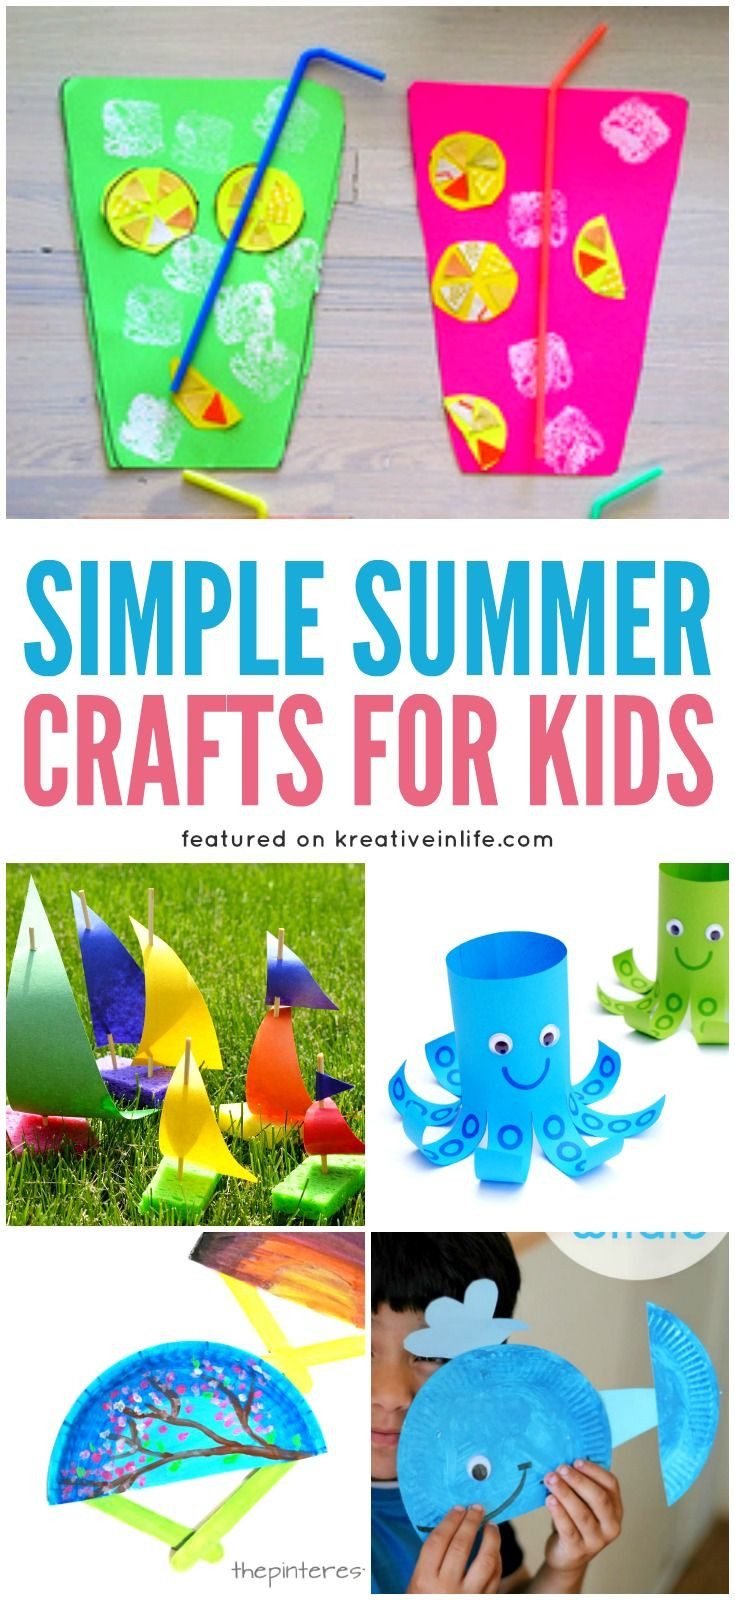 Best ideas about Easy Activities For Kids . Save or Pin Best 25 Summer crafts ideas on Pinterest Now.